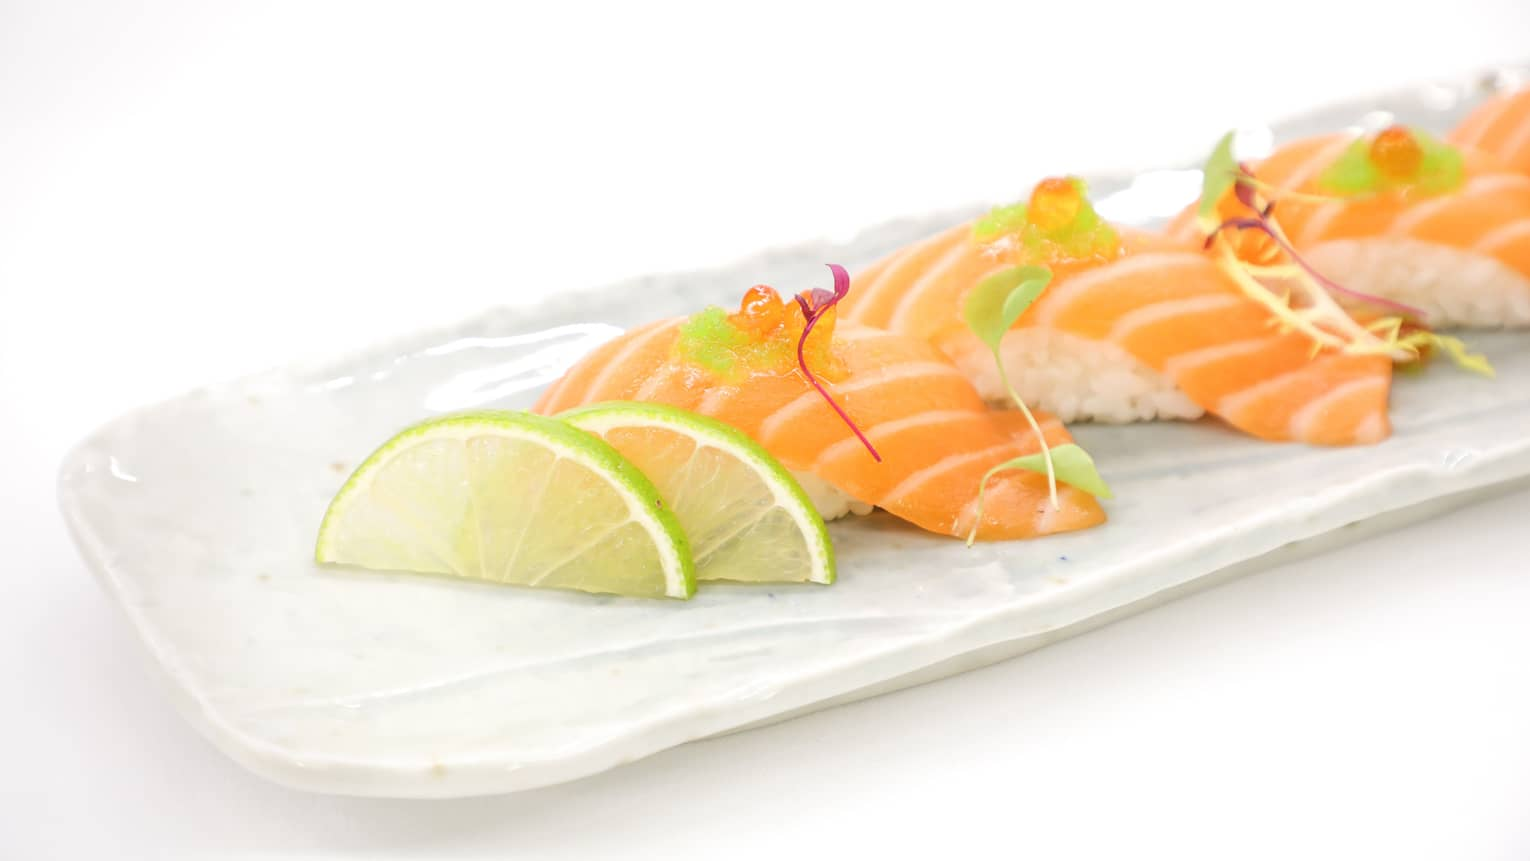 Slices of salmon sashimi on white tray with lime wedges